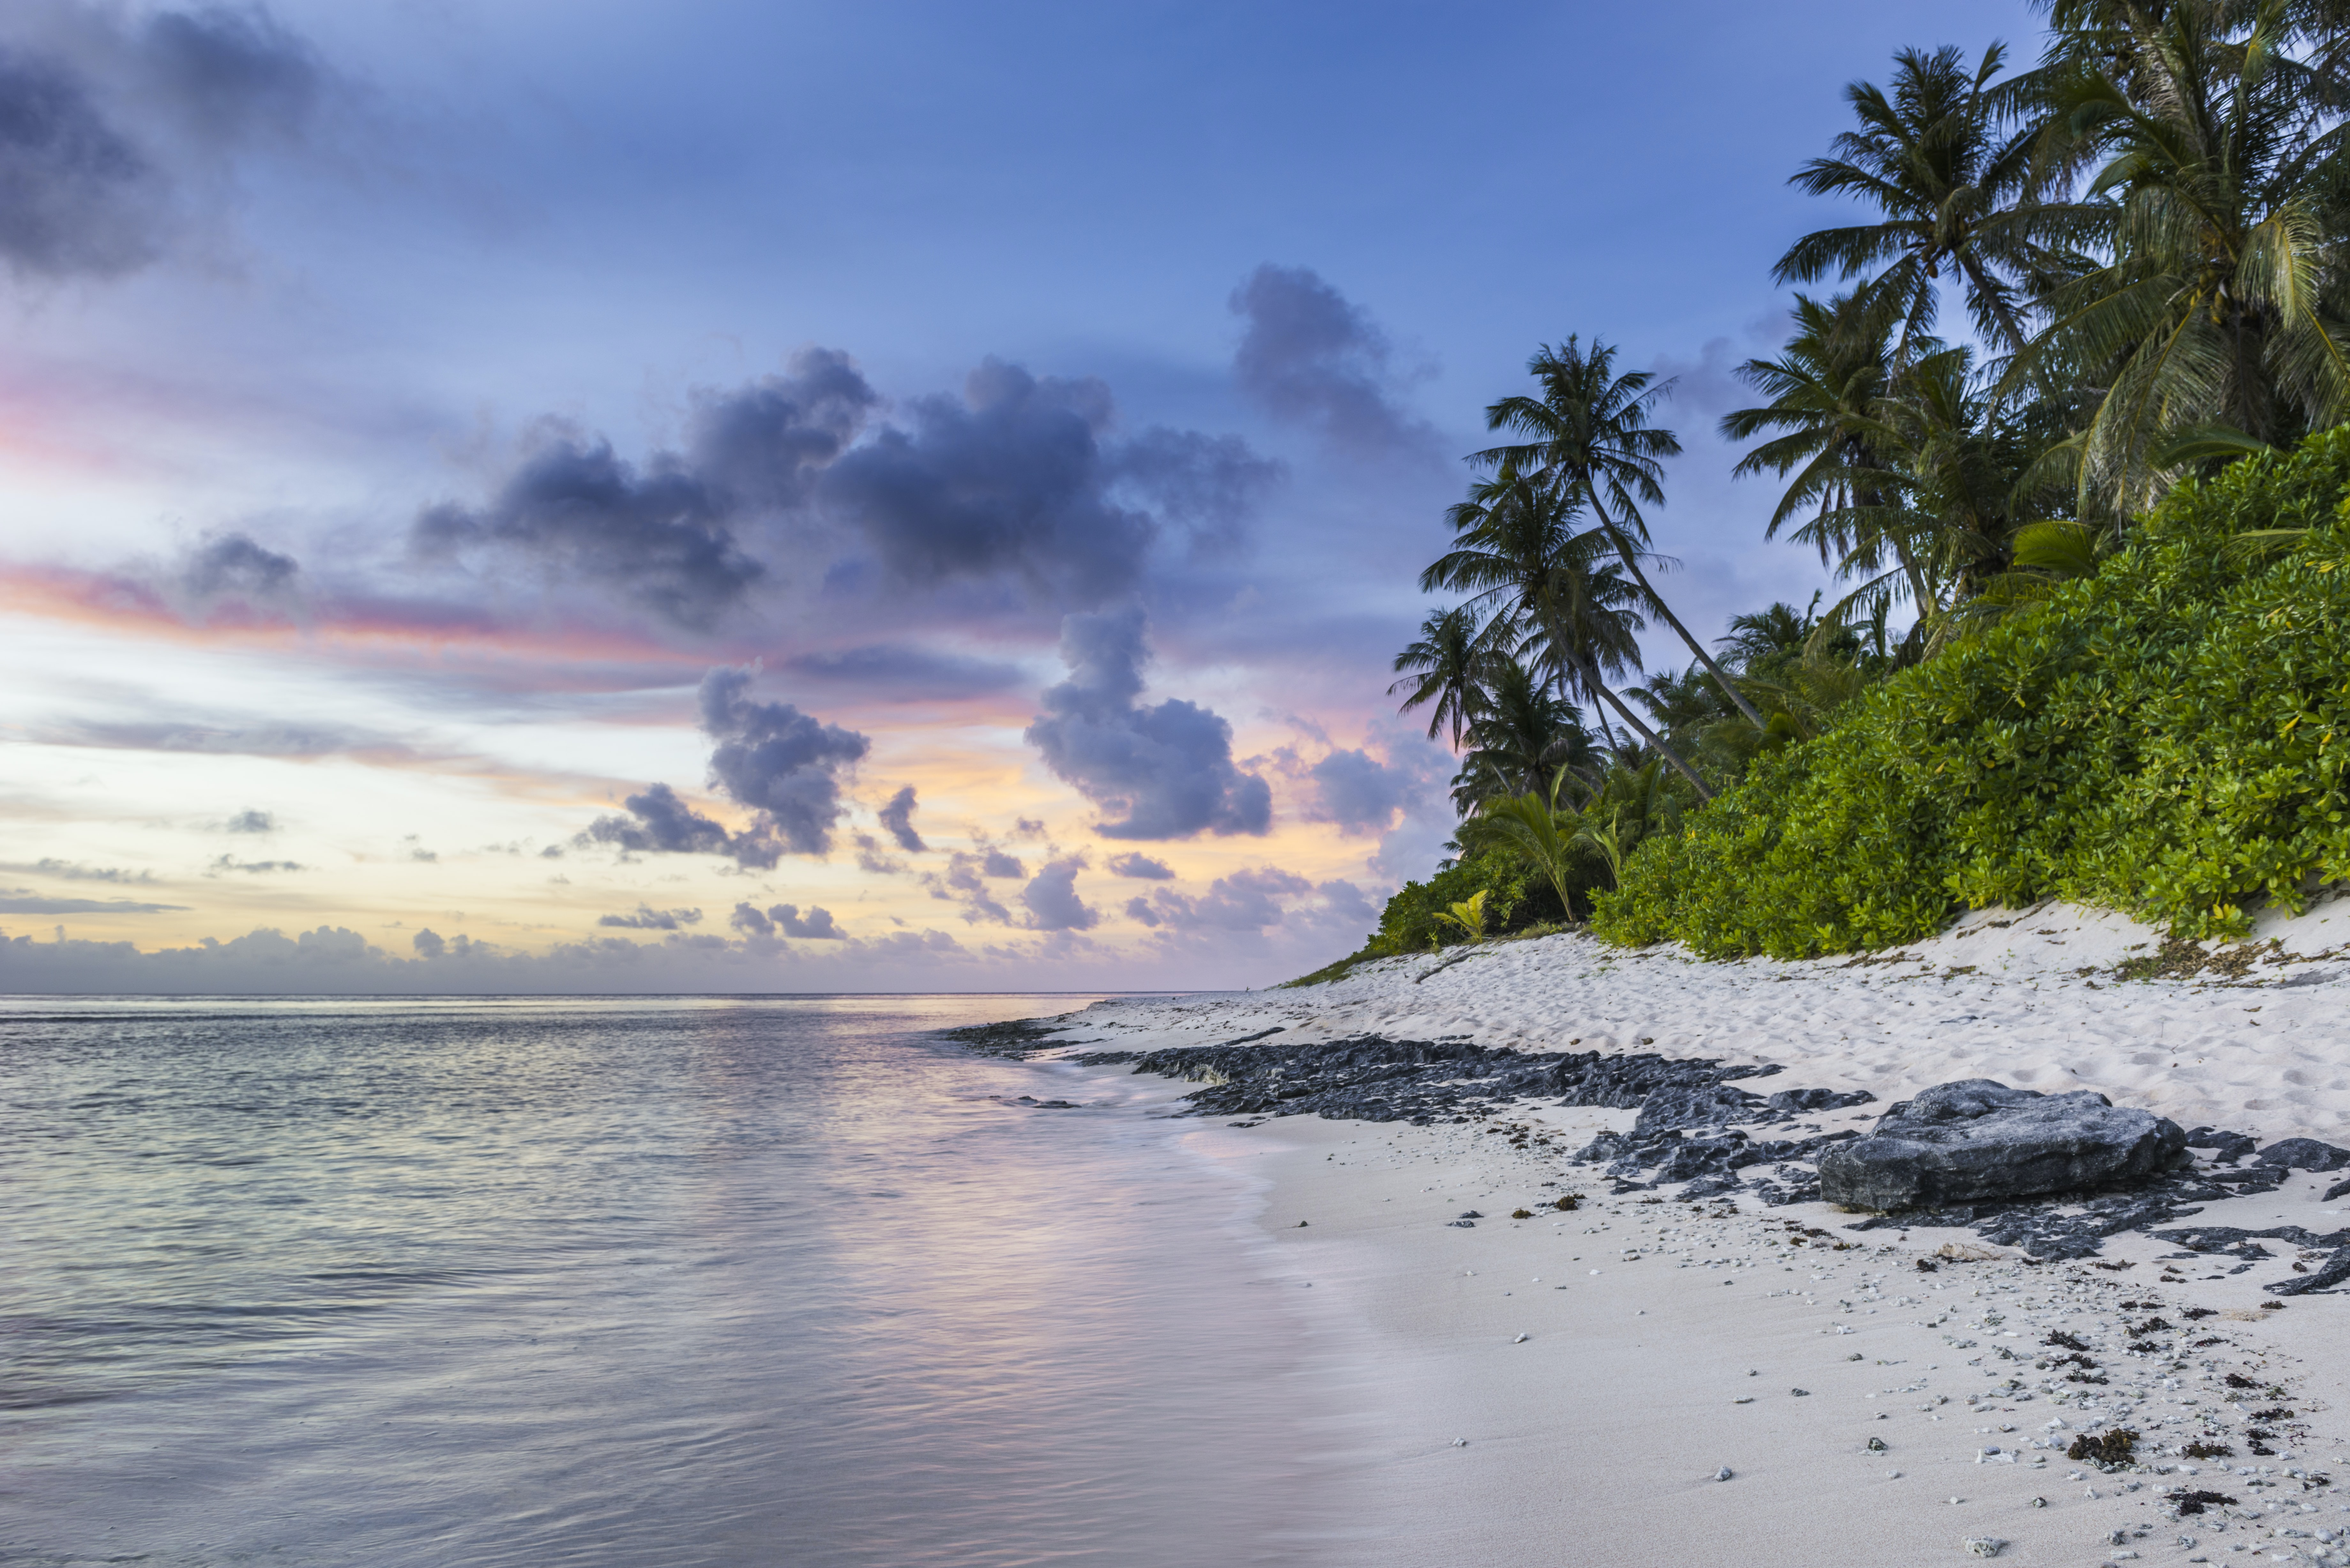 A beautiful beach and palm trees during sunset